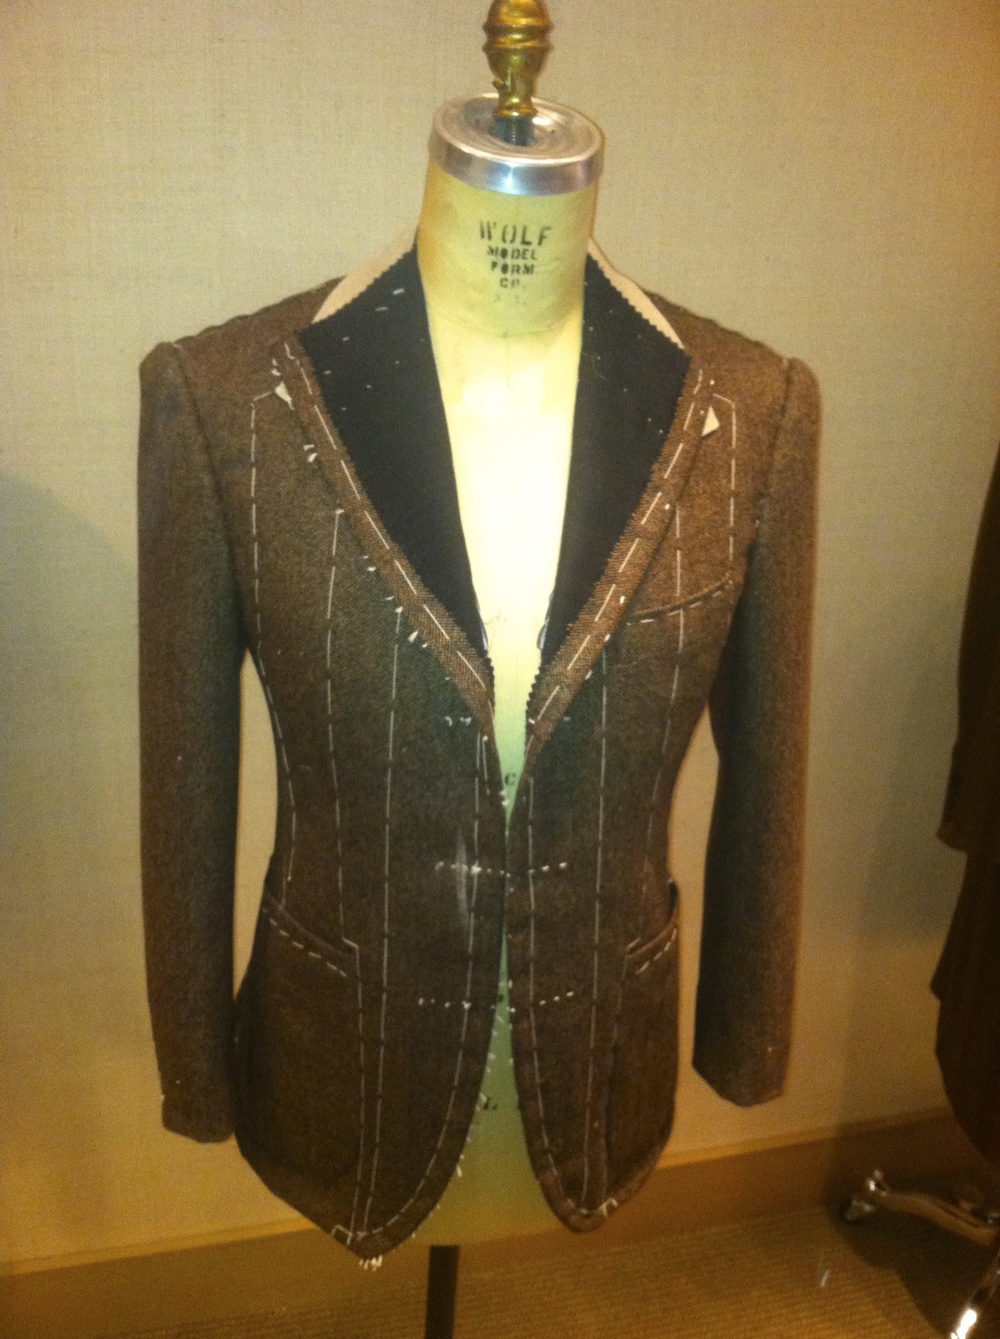 The brown herringbone jacket in question, photographed at the basted fitting stage. The dummy nicely displays the jacket's shape. The other dummy wishes he had a proper camera with him.